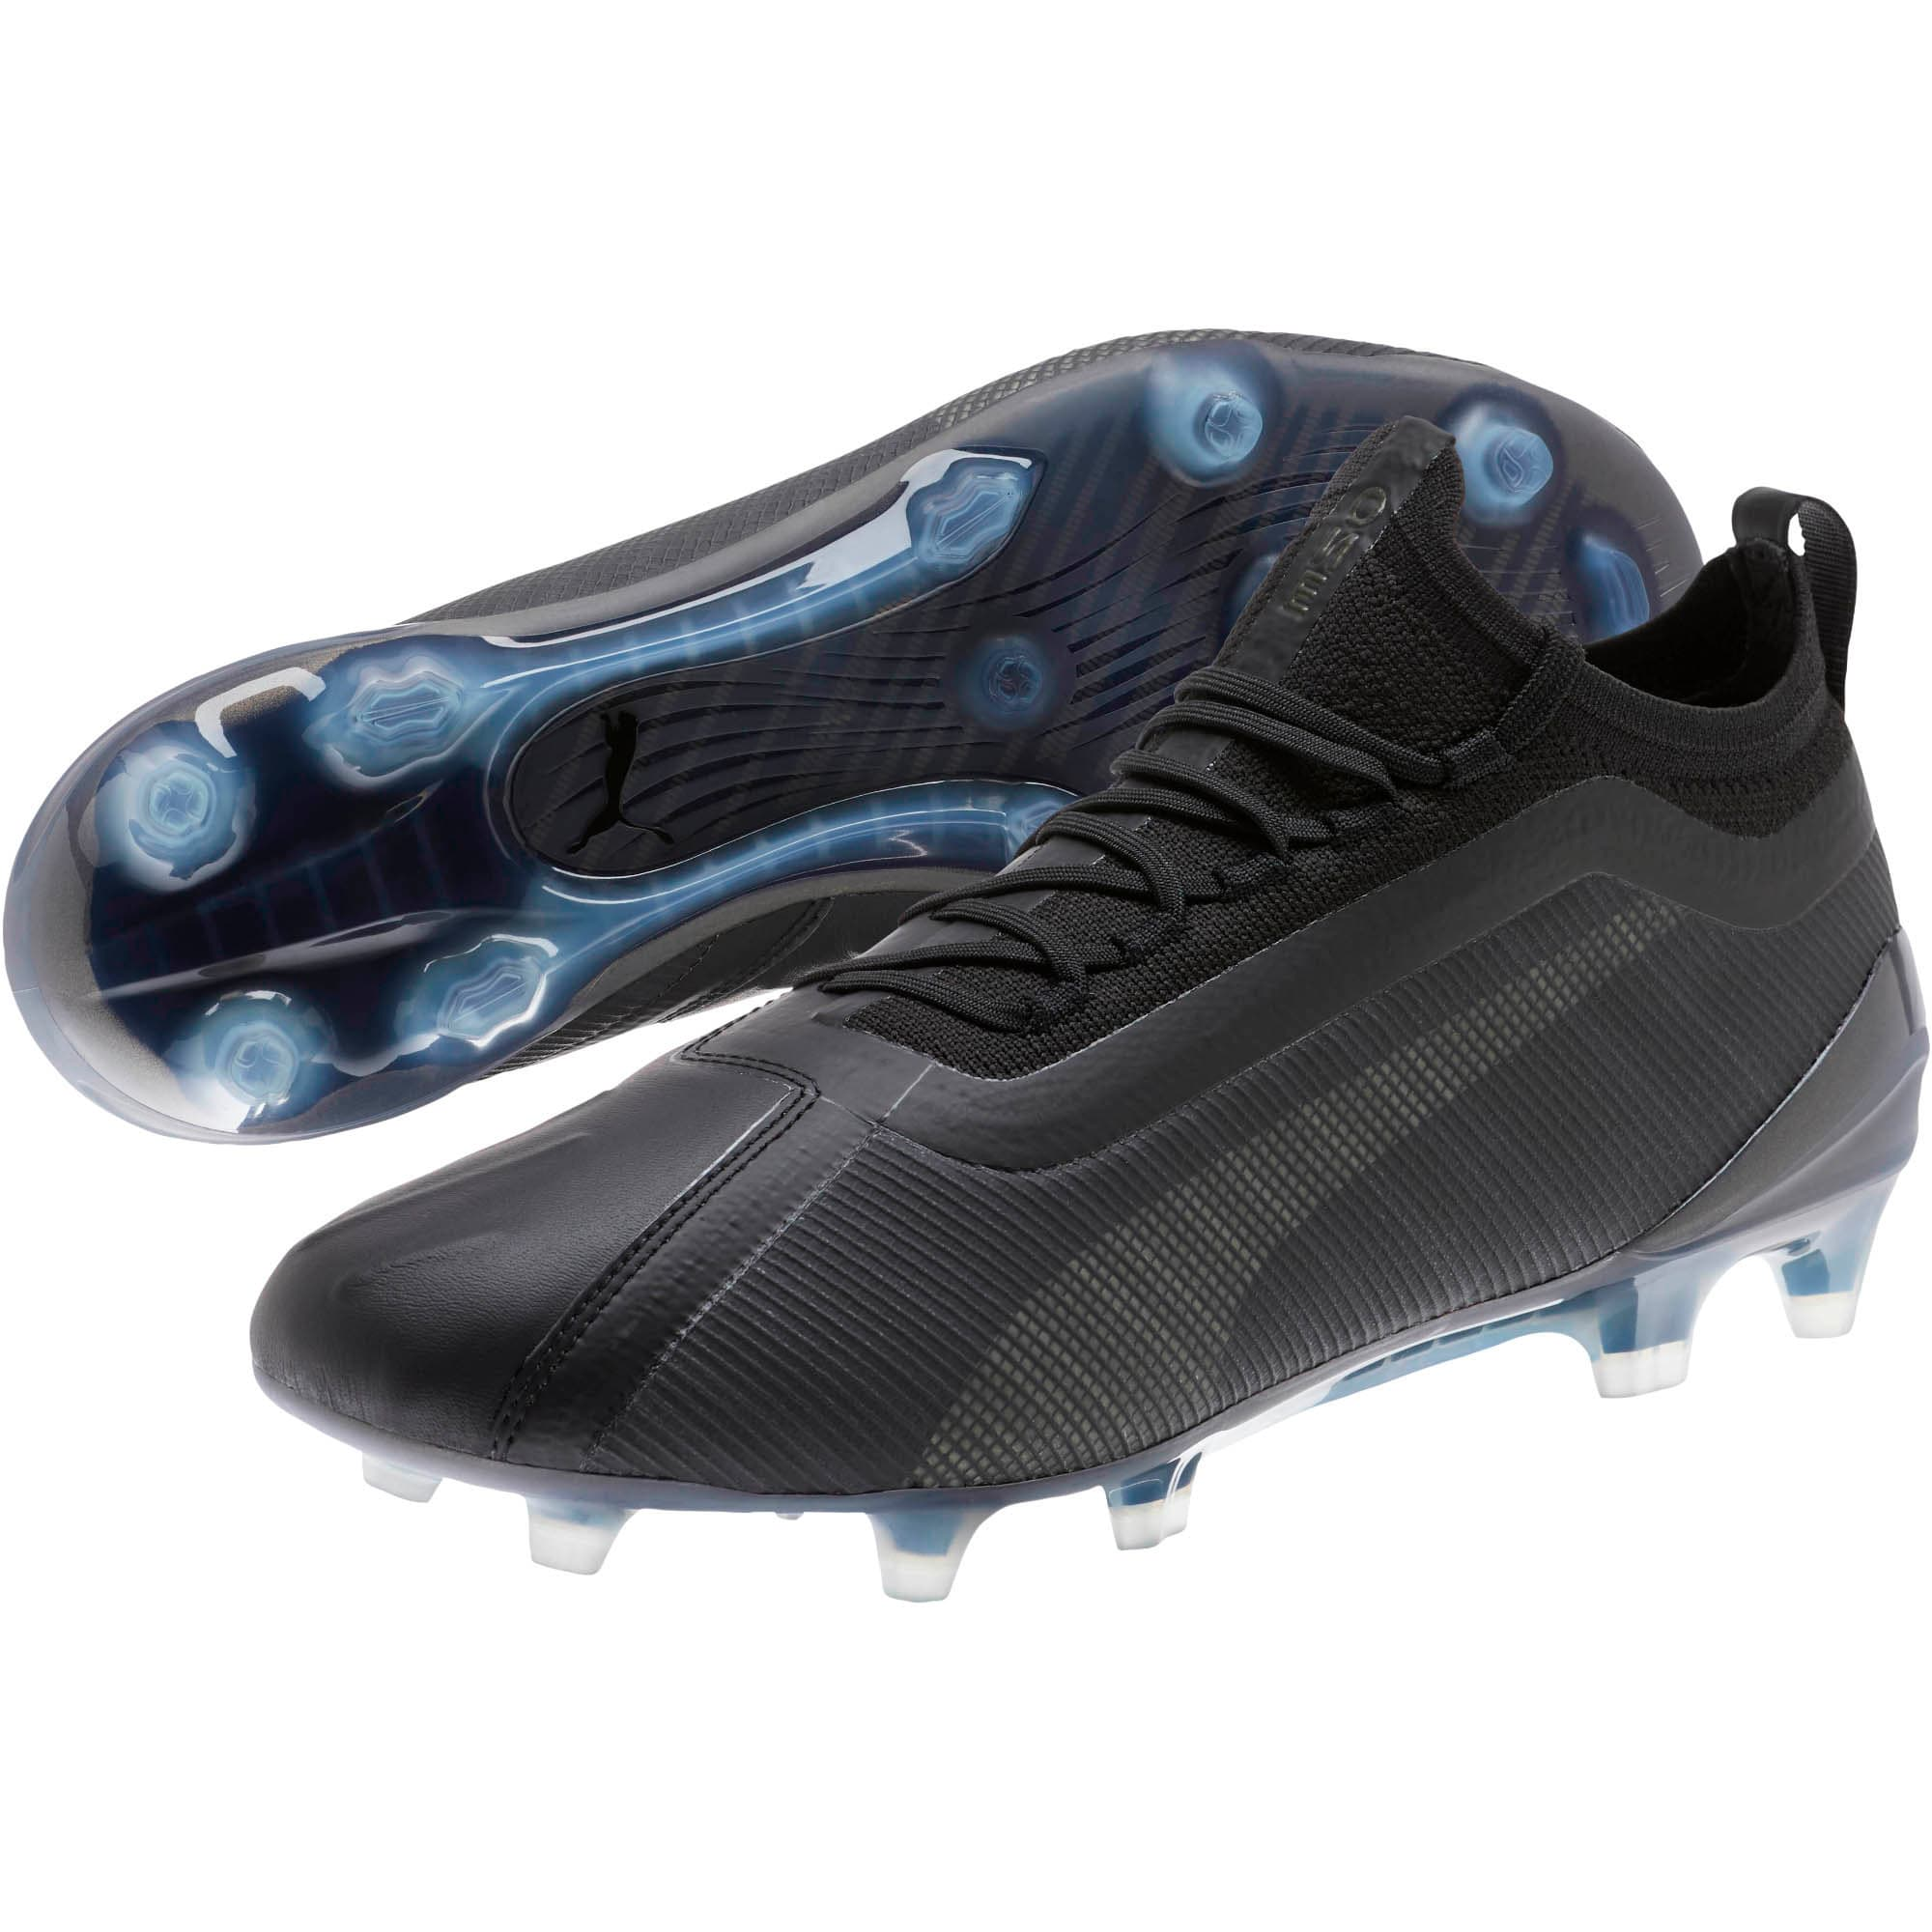 Thumbnail 2 of PUMA ONE 5.1 FG/AG Men's Soccer Cleats, Black-Black-Puma Aged Silver, medium